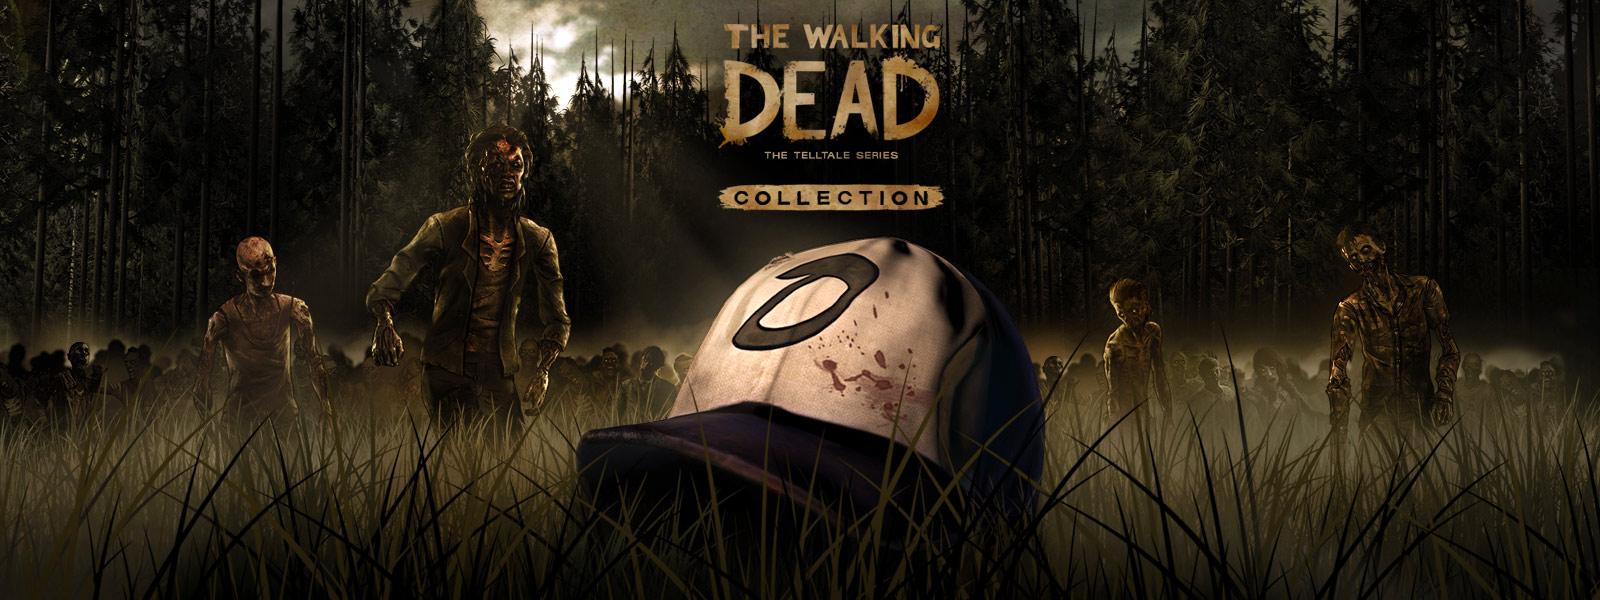 The Walking Dead the Telltale Series Collection (zombilauma lähestyy Clementinen hattua pellolla)